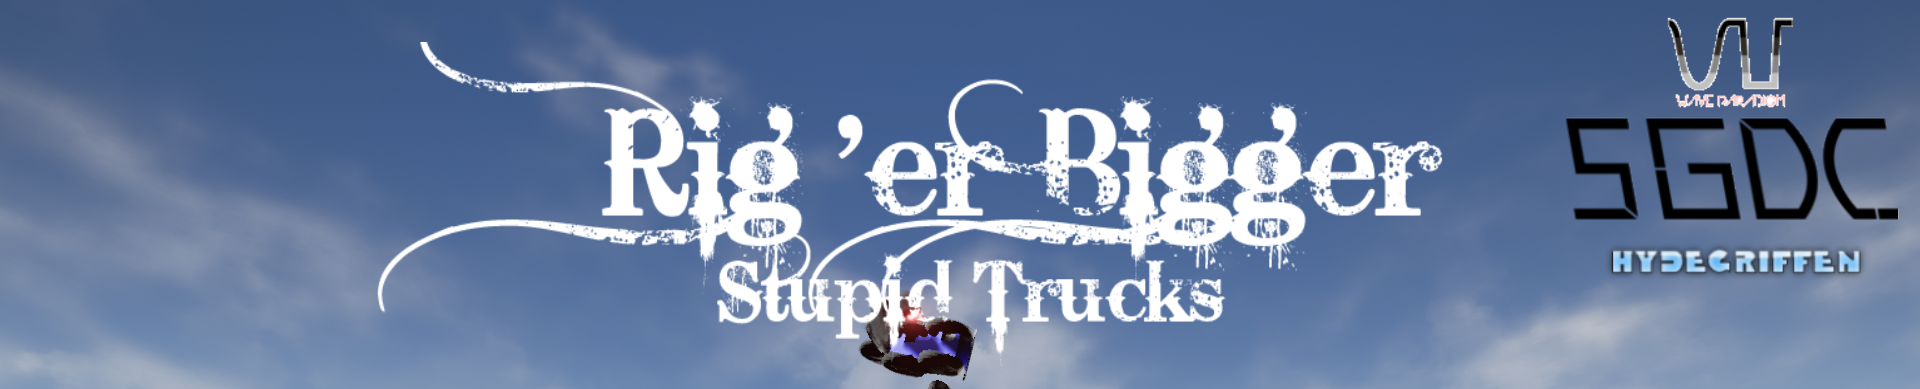 Rig 'er Bigger: Stupid Trucks